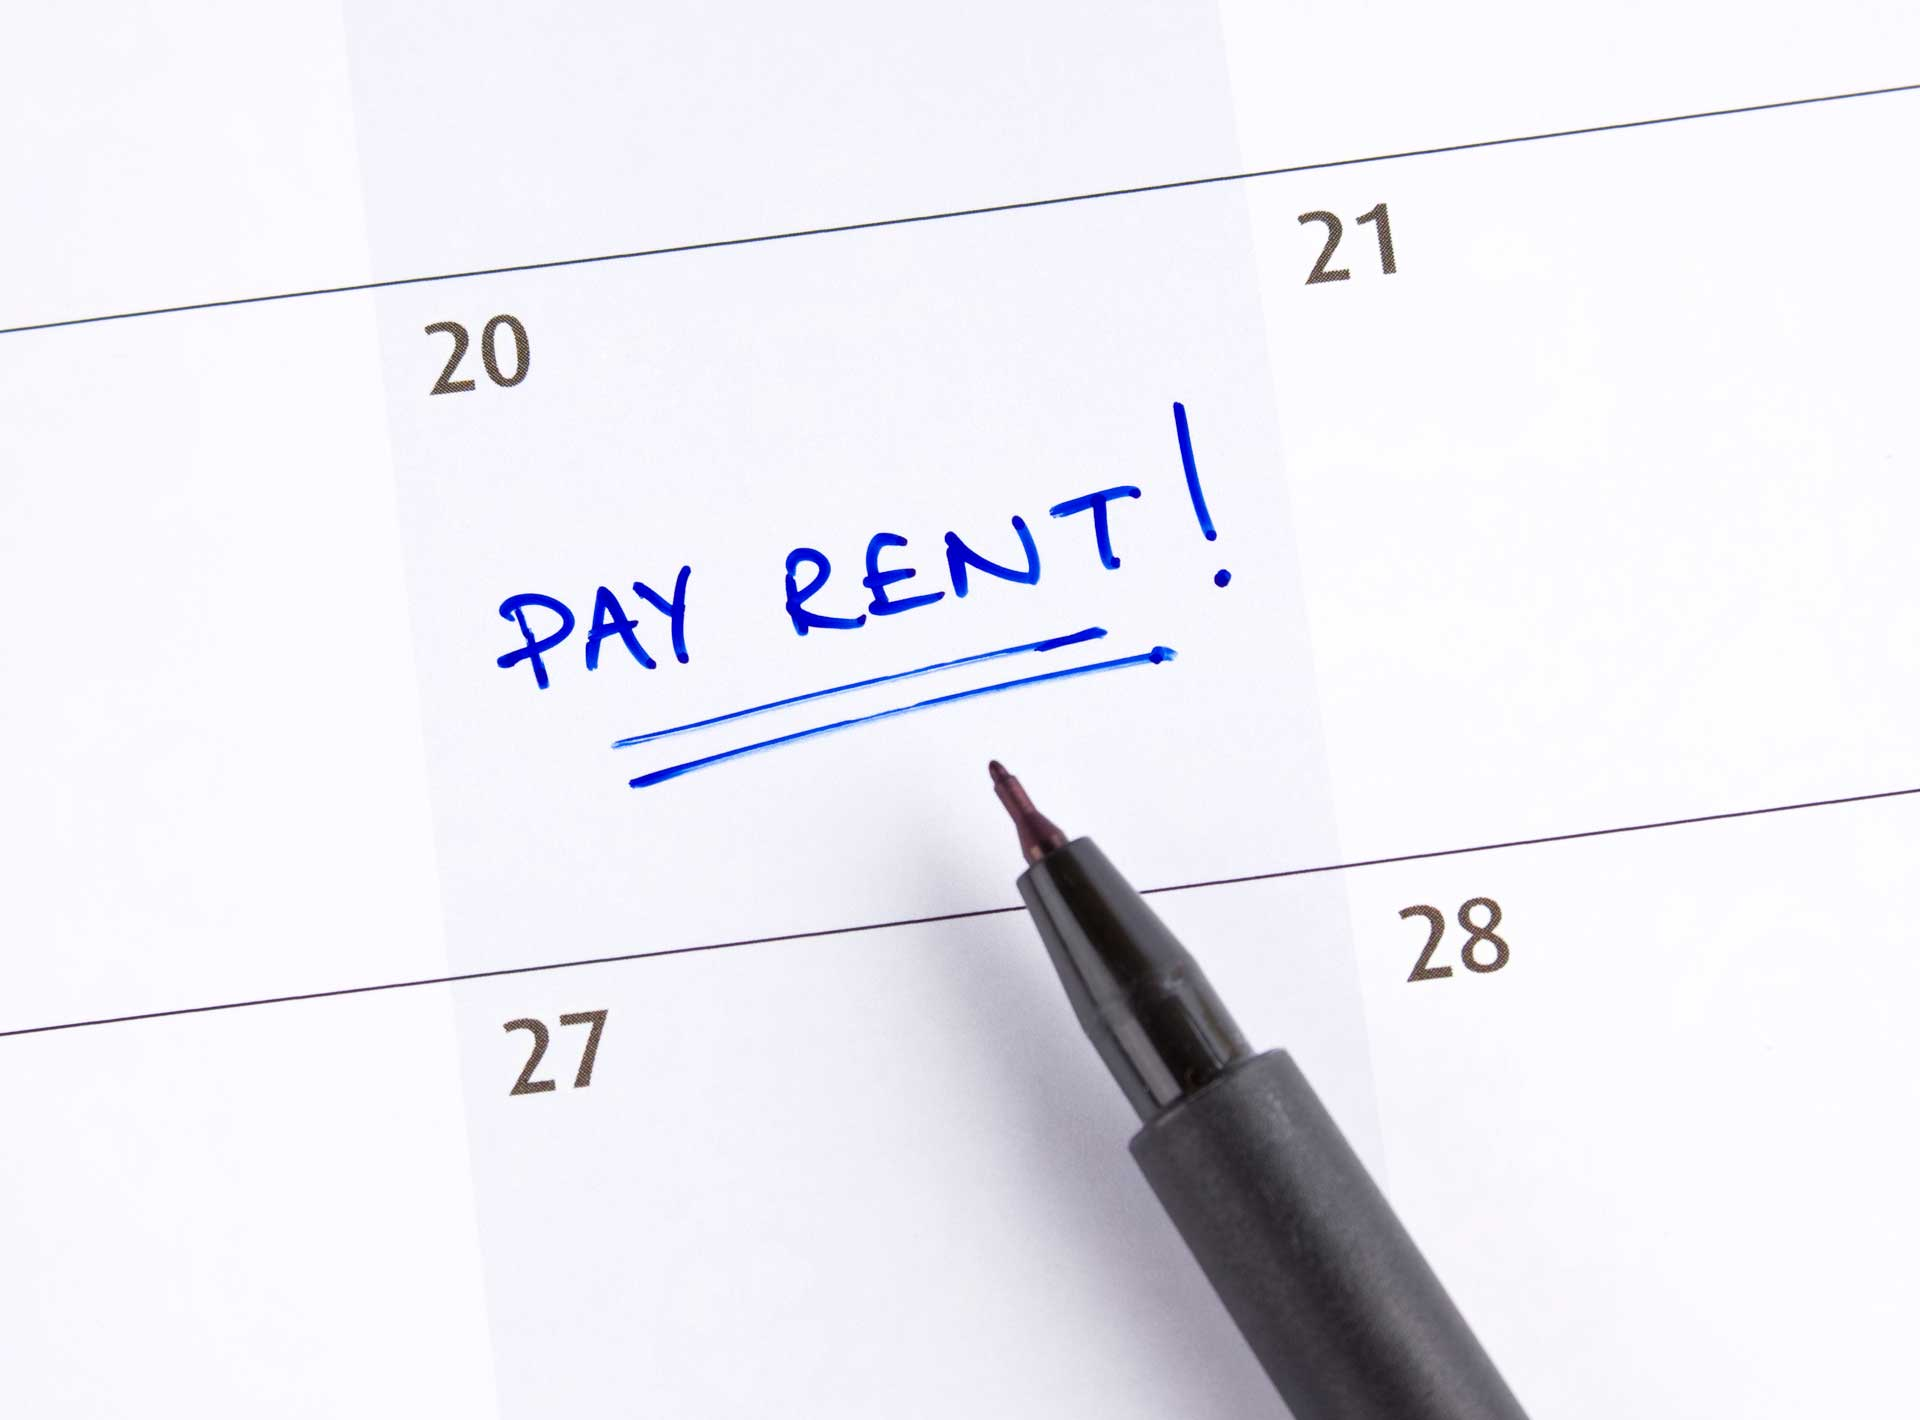 pay rent day on calendar